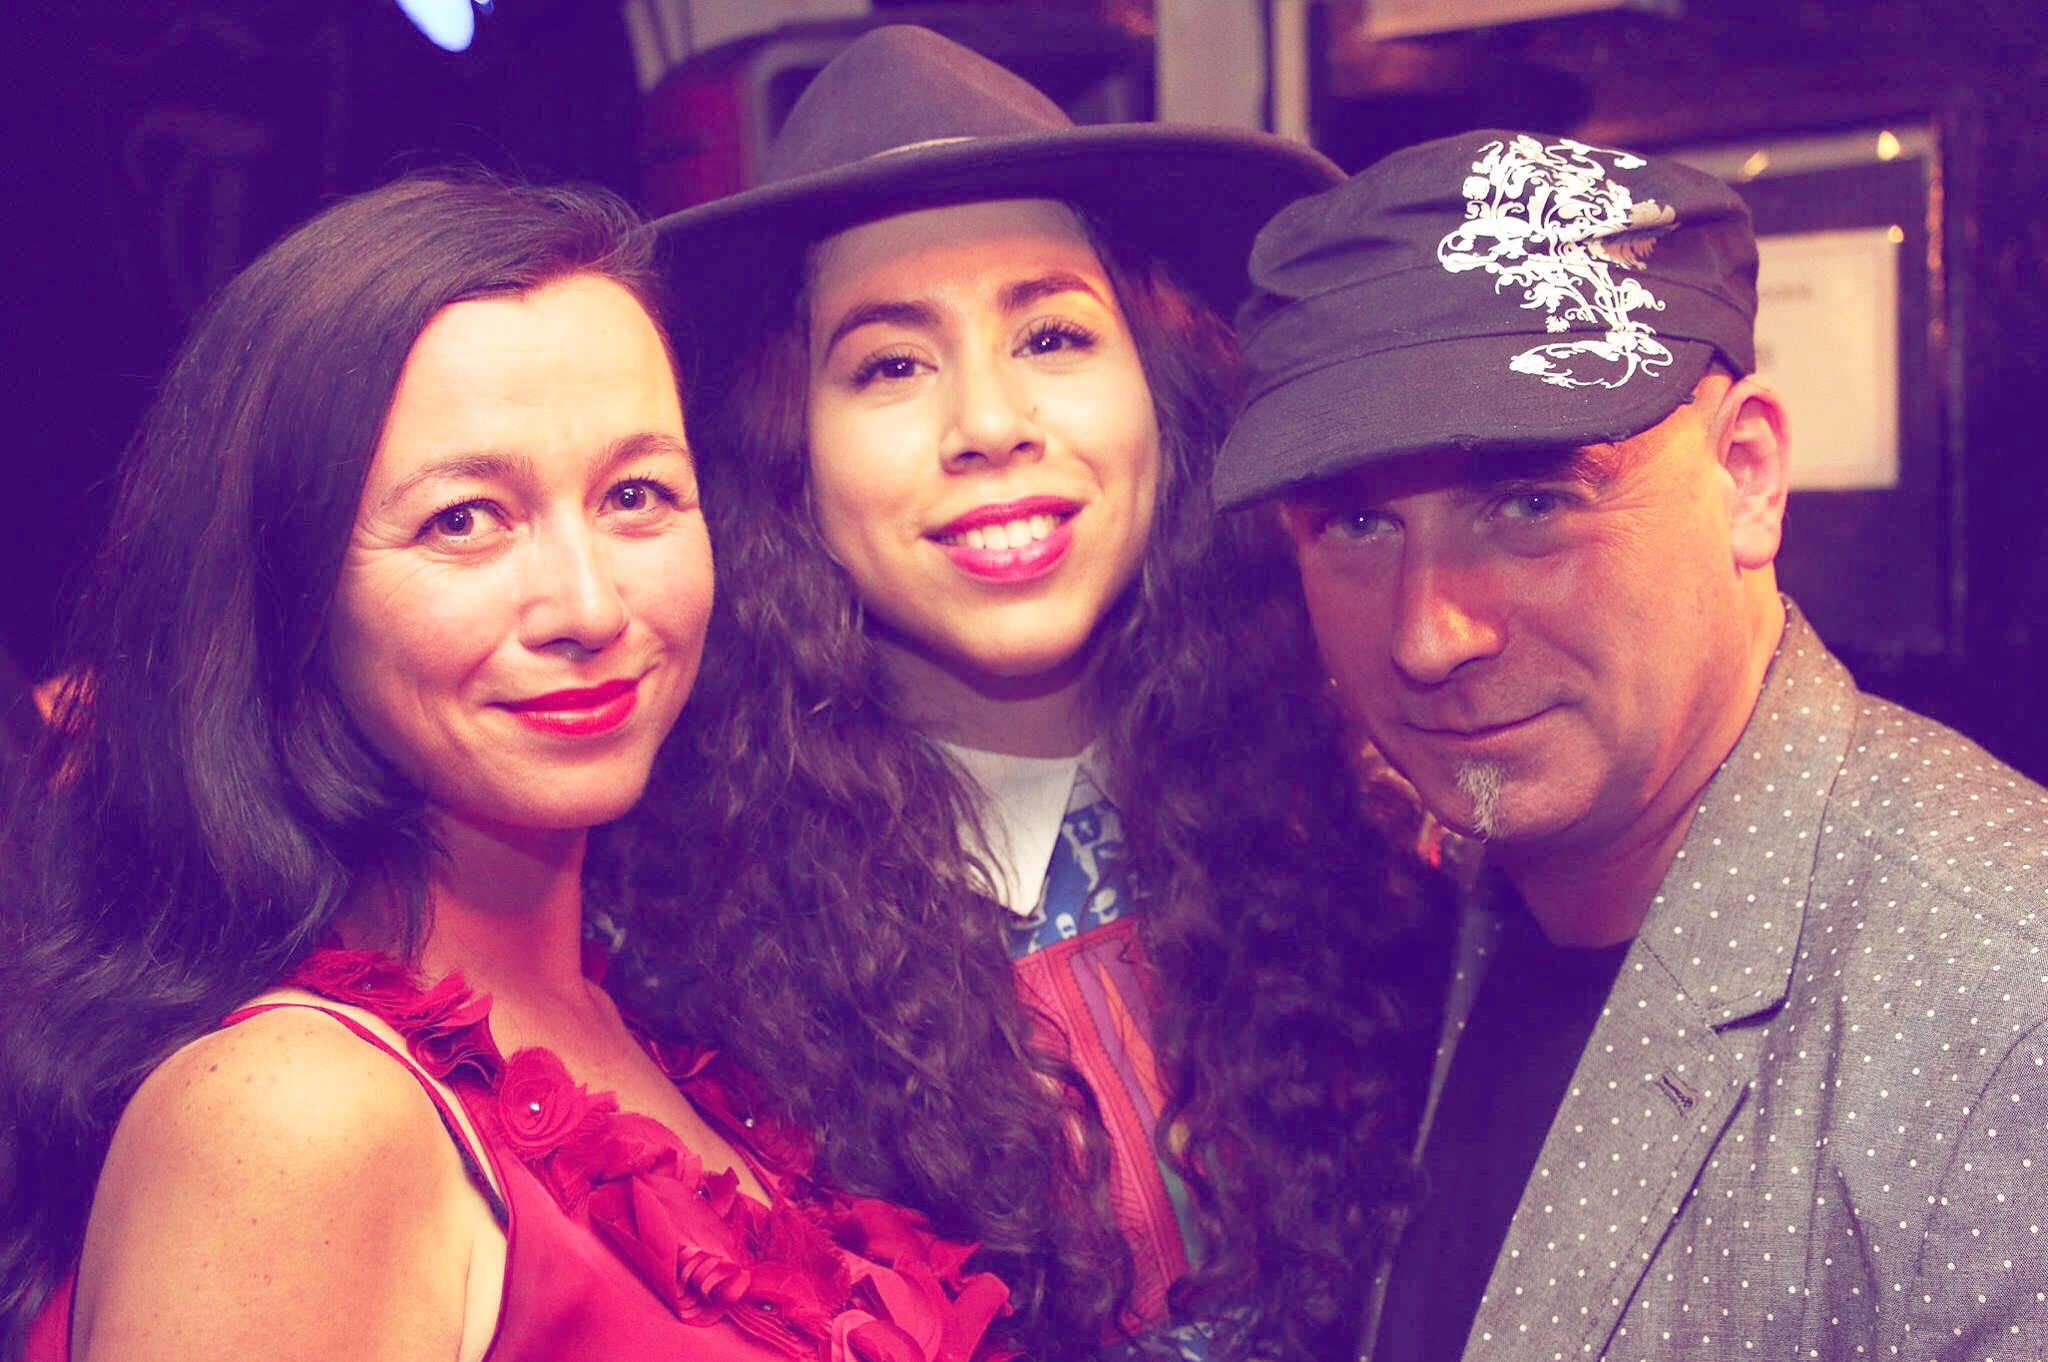 In the picture: Laura Westcott(Left) Emel Michael (Centre) Tony Moore - Founder of the Bedford (Right)  picture taken by Des Chisholm